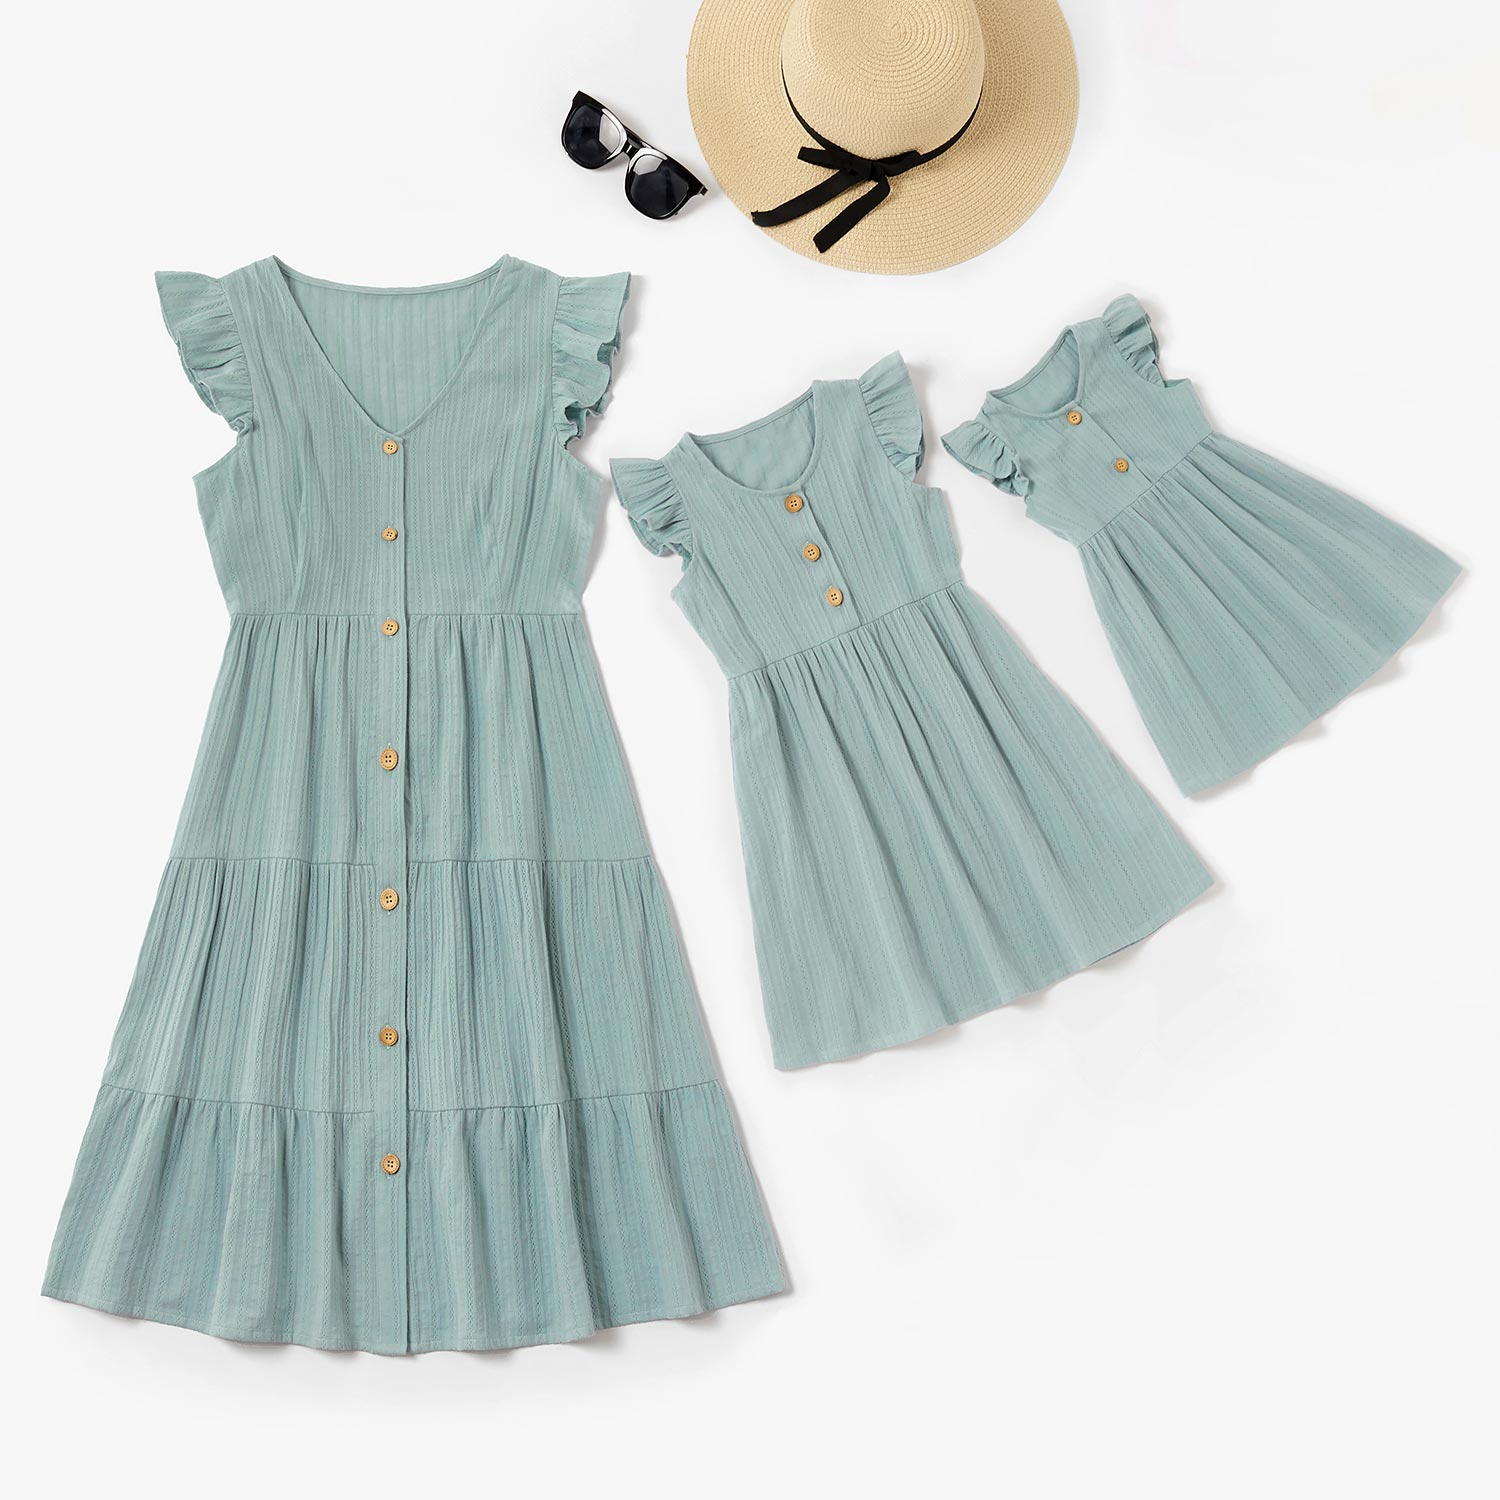 100% Cotton Solid Ruffle Matching Dresses